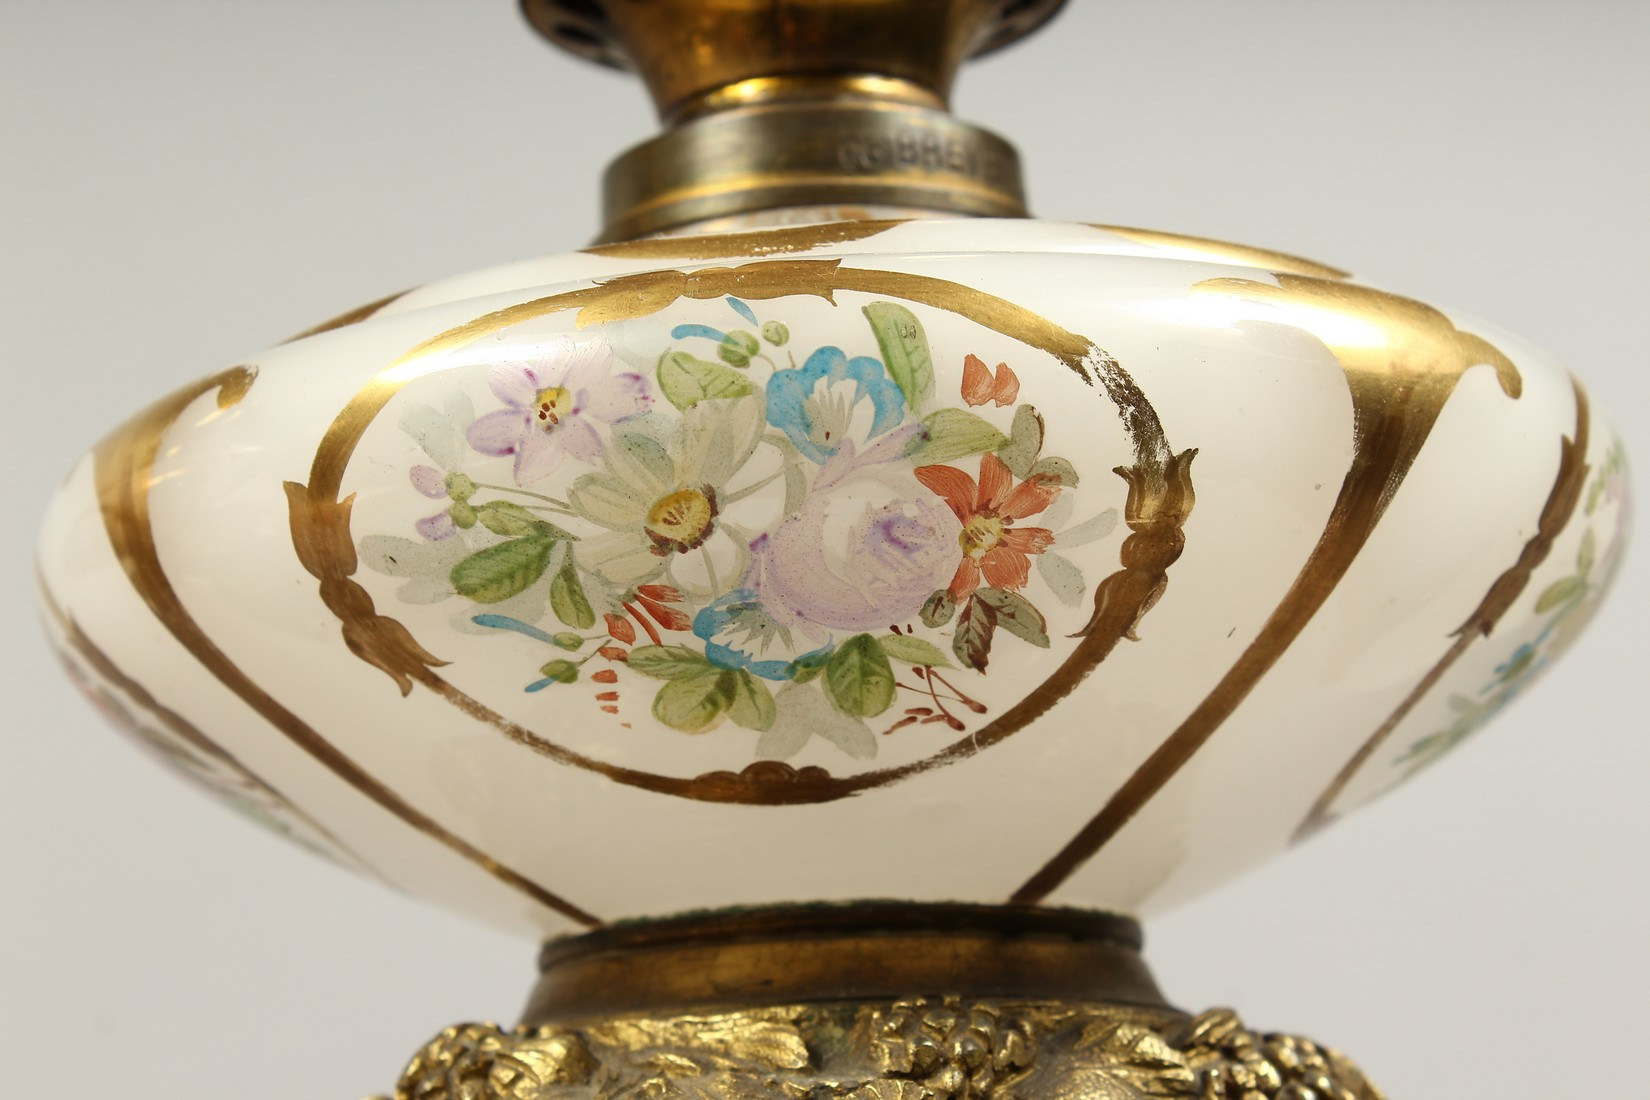 A SUPERB PAIR OF 19TH CENTURY FRENCH PORCELAIN AND GILT BRONZE LAMPS ON STANDS, painted with - Image 15 of 24